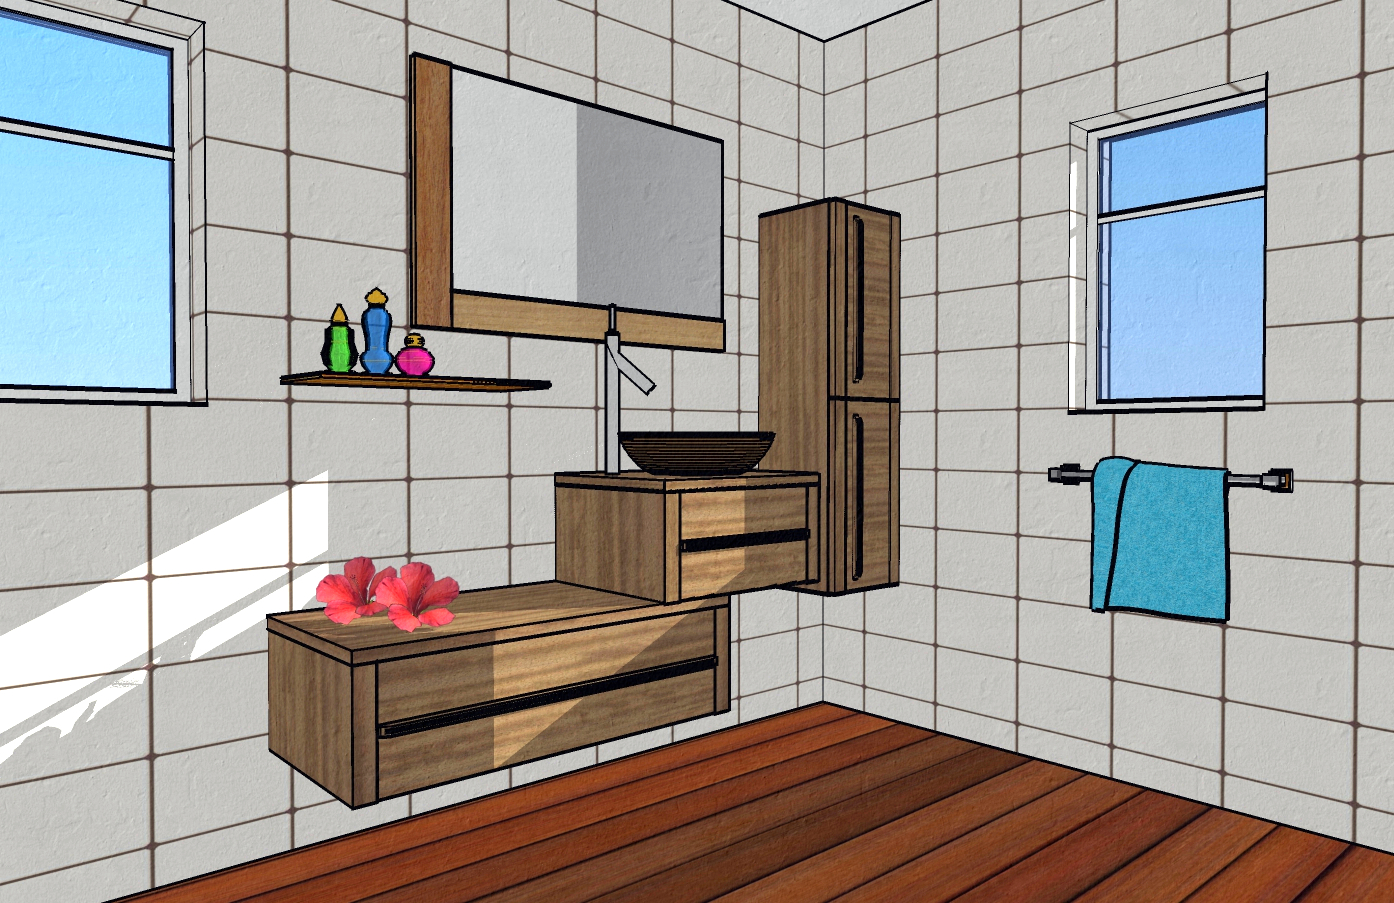 Initiation sketchup make - Creation de salle de bain en 3d gratuit ...